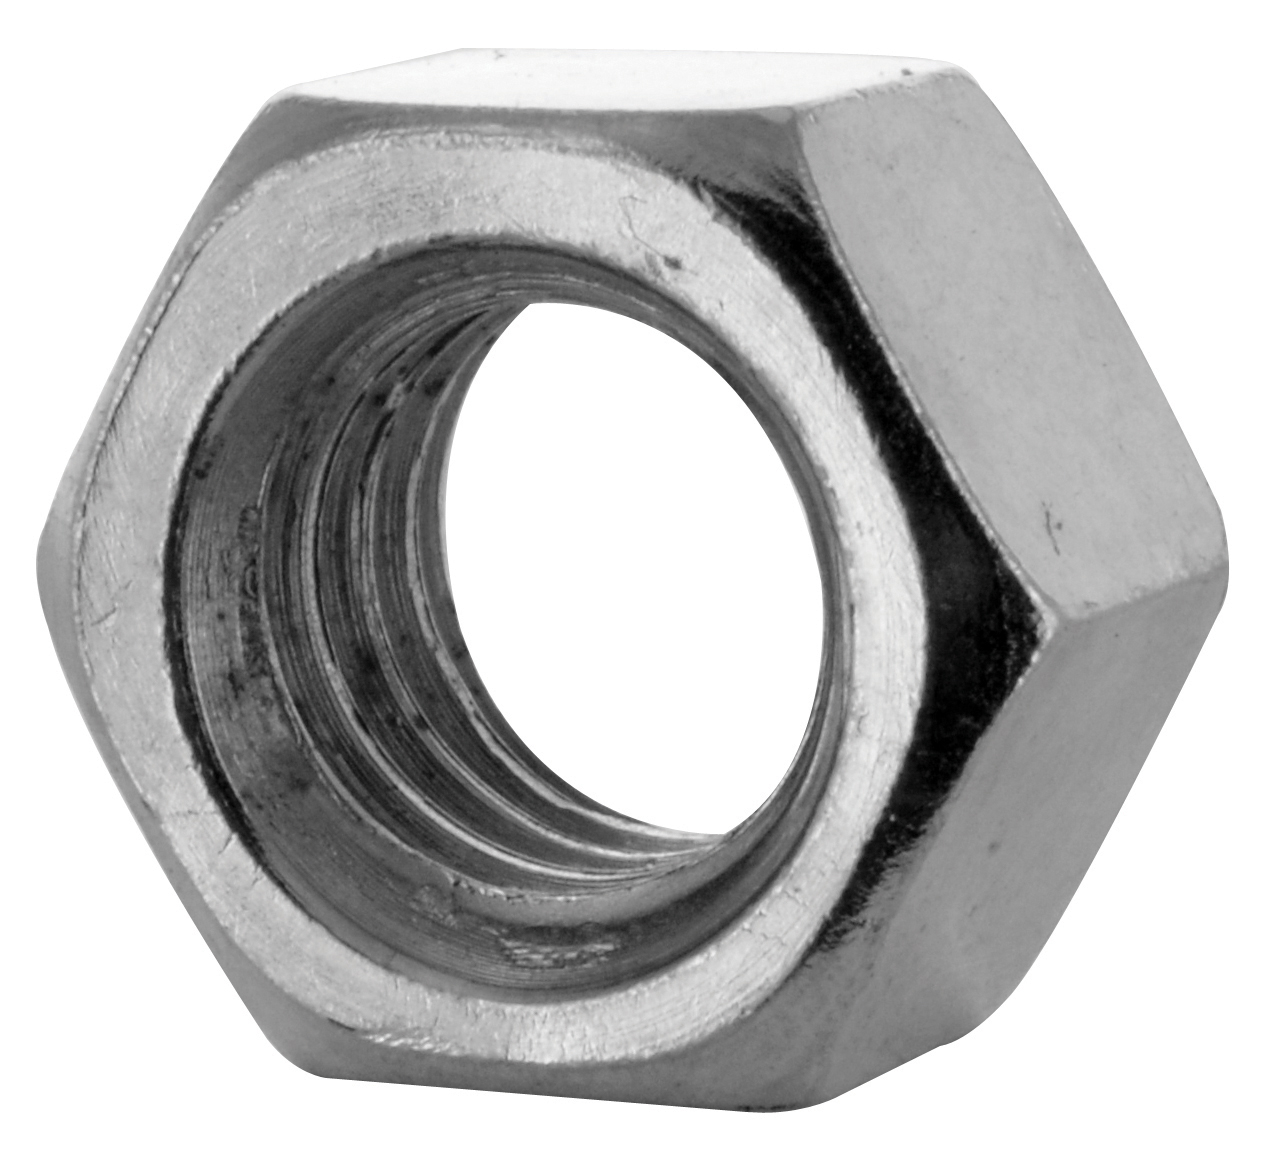 1/2-13 Coarse Zinc Grade A Left Handed Finished Hex Nut